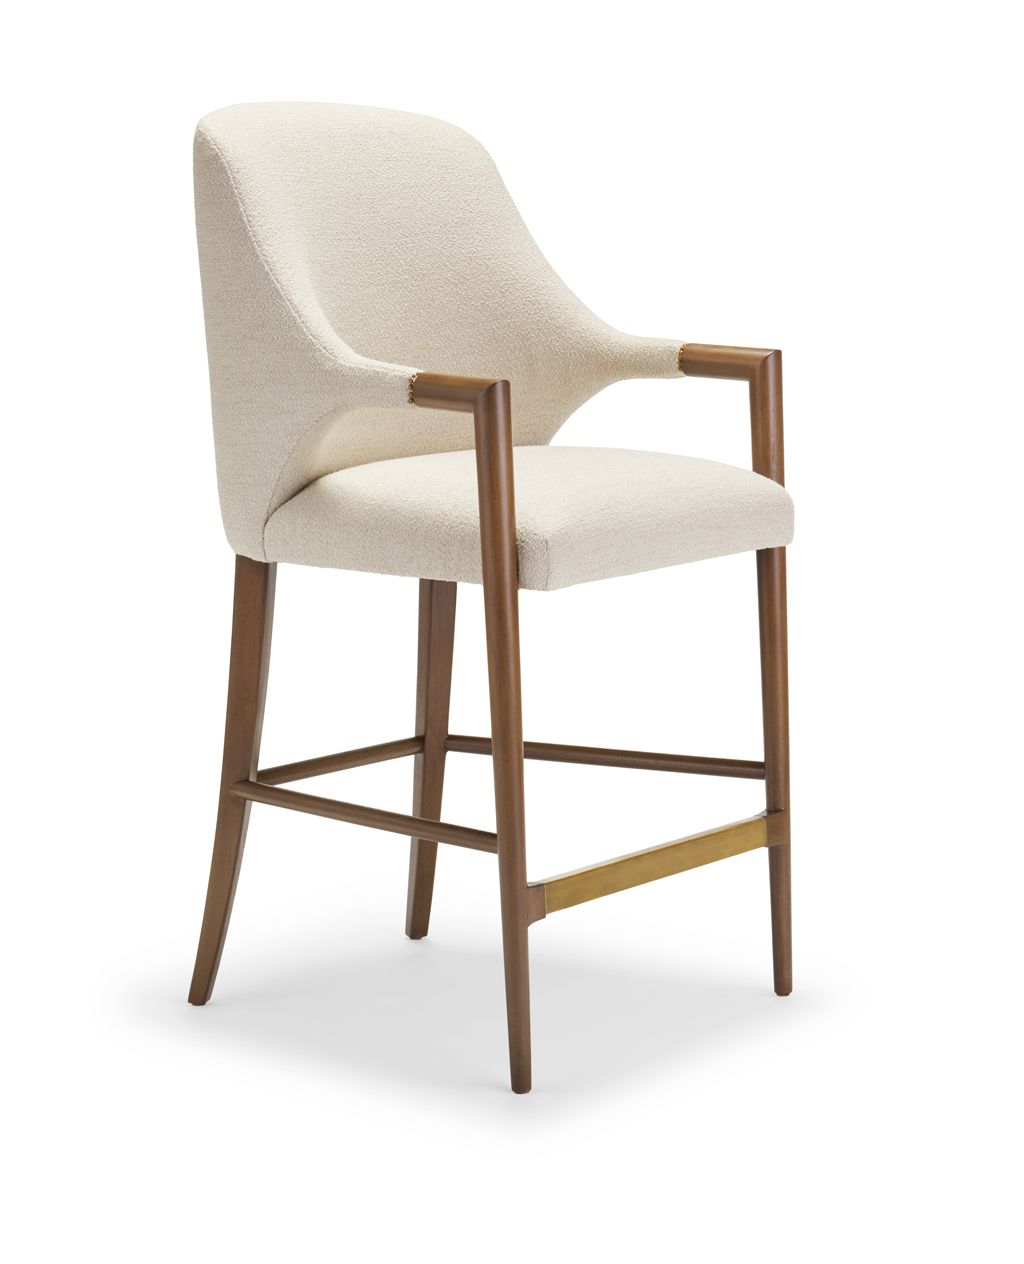 Harris Arm Barstool Lounge / barstools/dining chairs